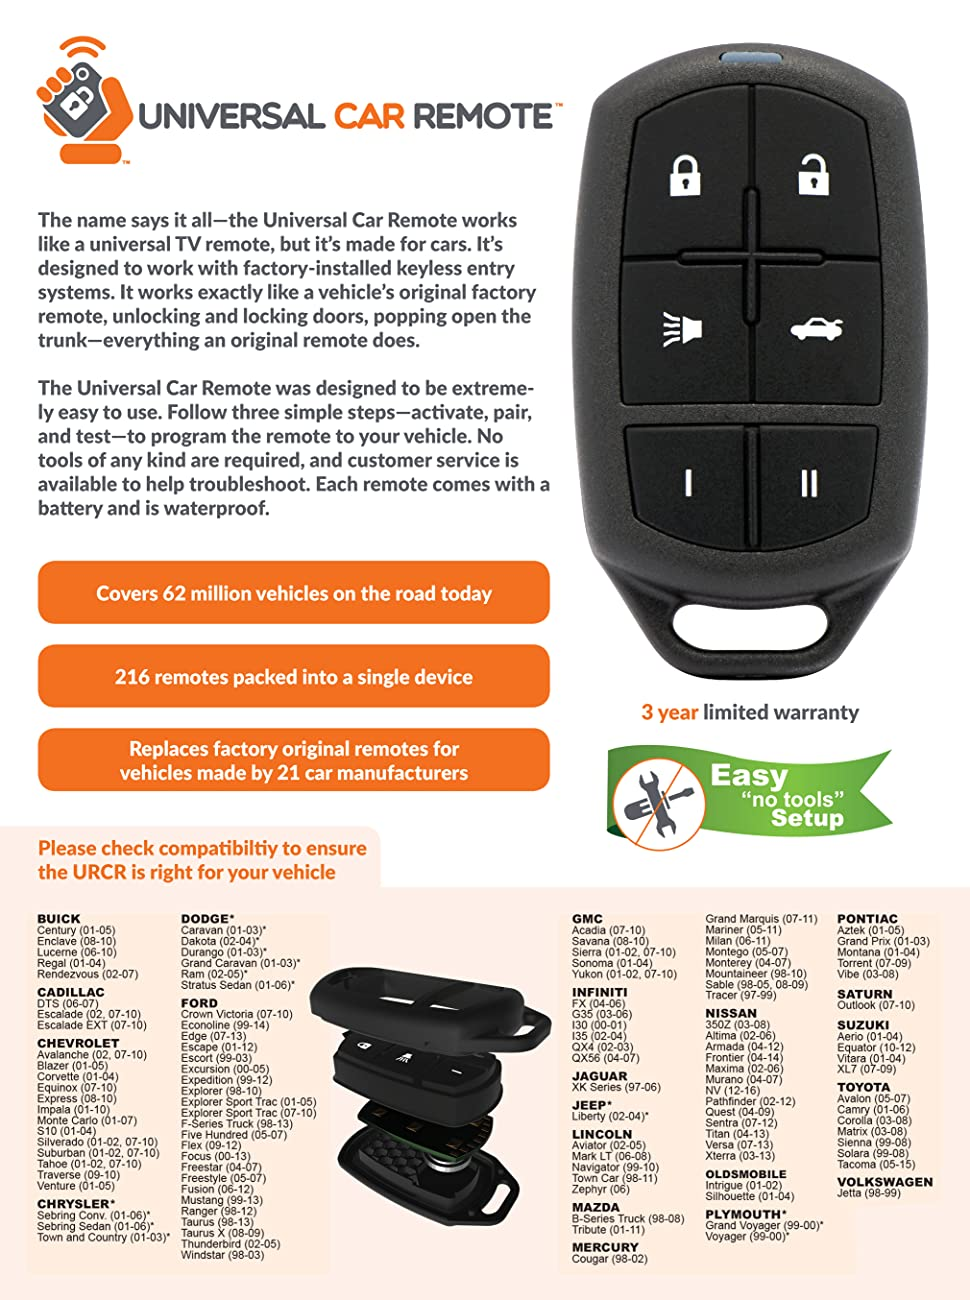 Replacement Keyless Entry Universal Car Remote Control Auto Mobile Starter Kit Product Description